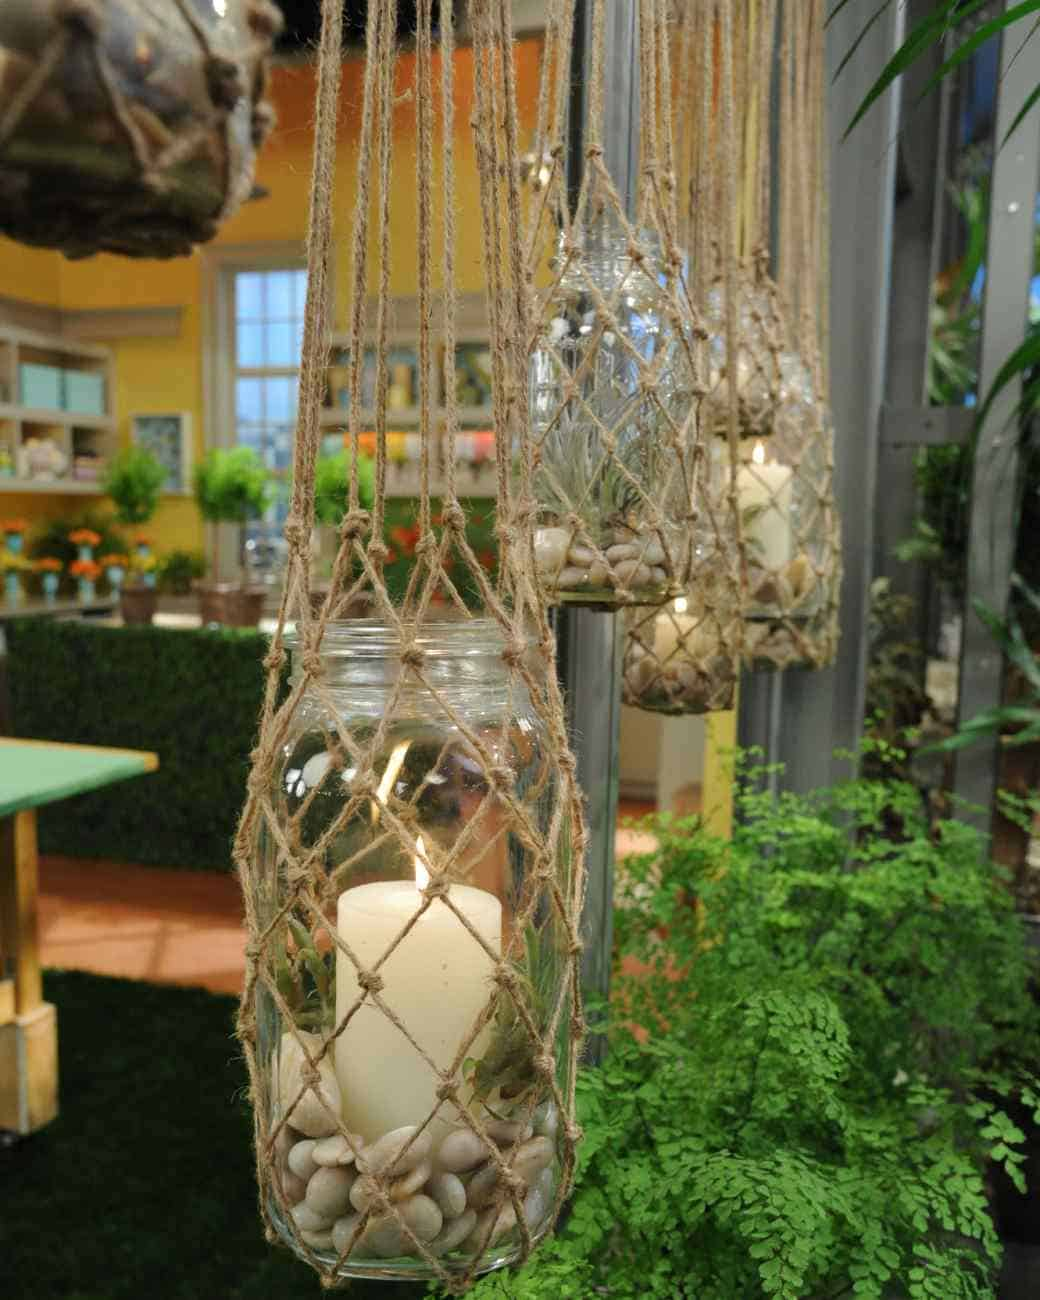 Mason jar and knotted rope hanging lanterns